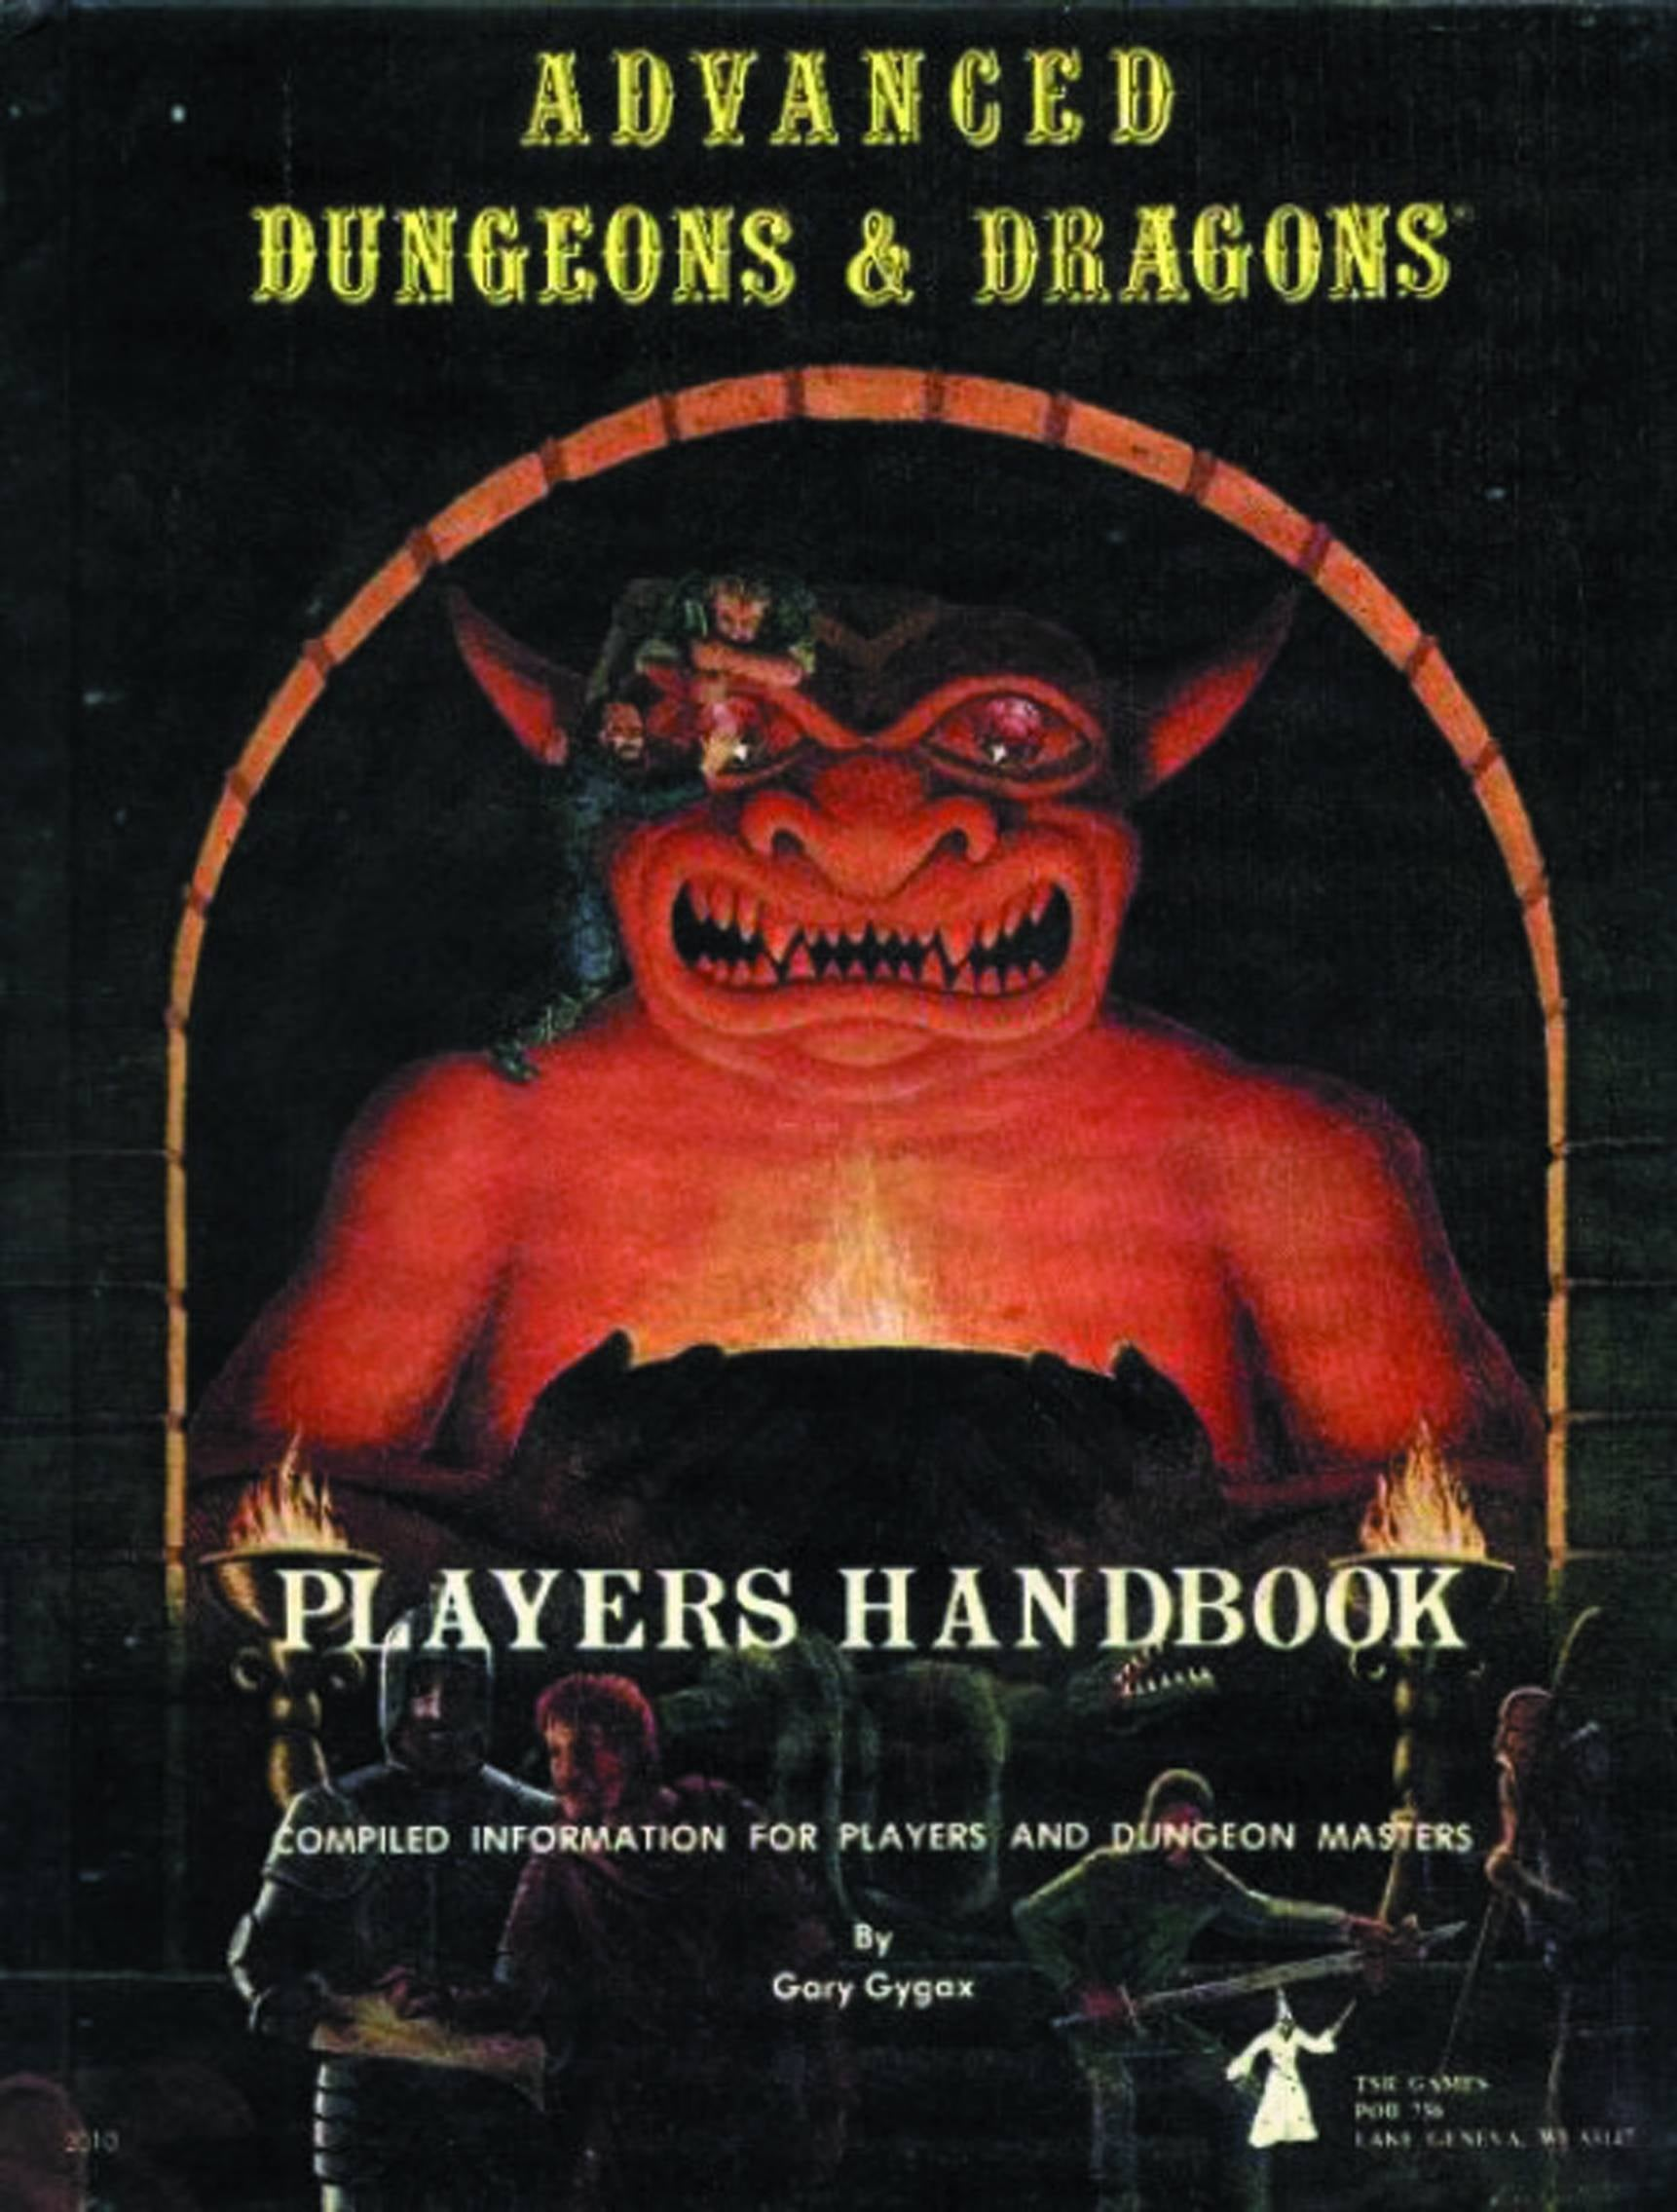 David A. Trampier, Iconic Artist of Early D&D, Passed Away This Week